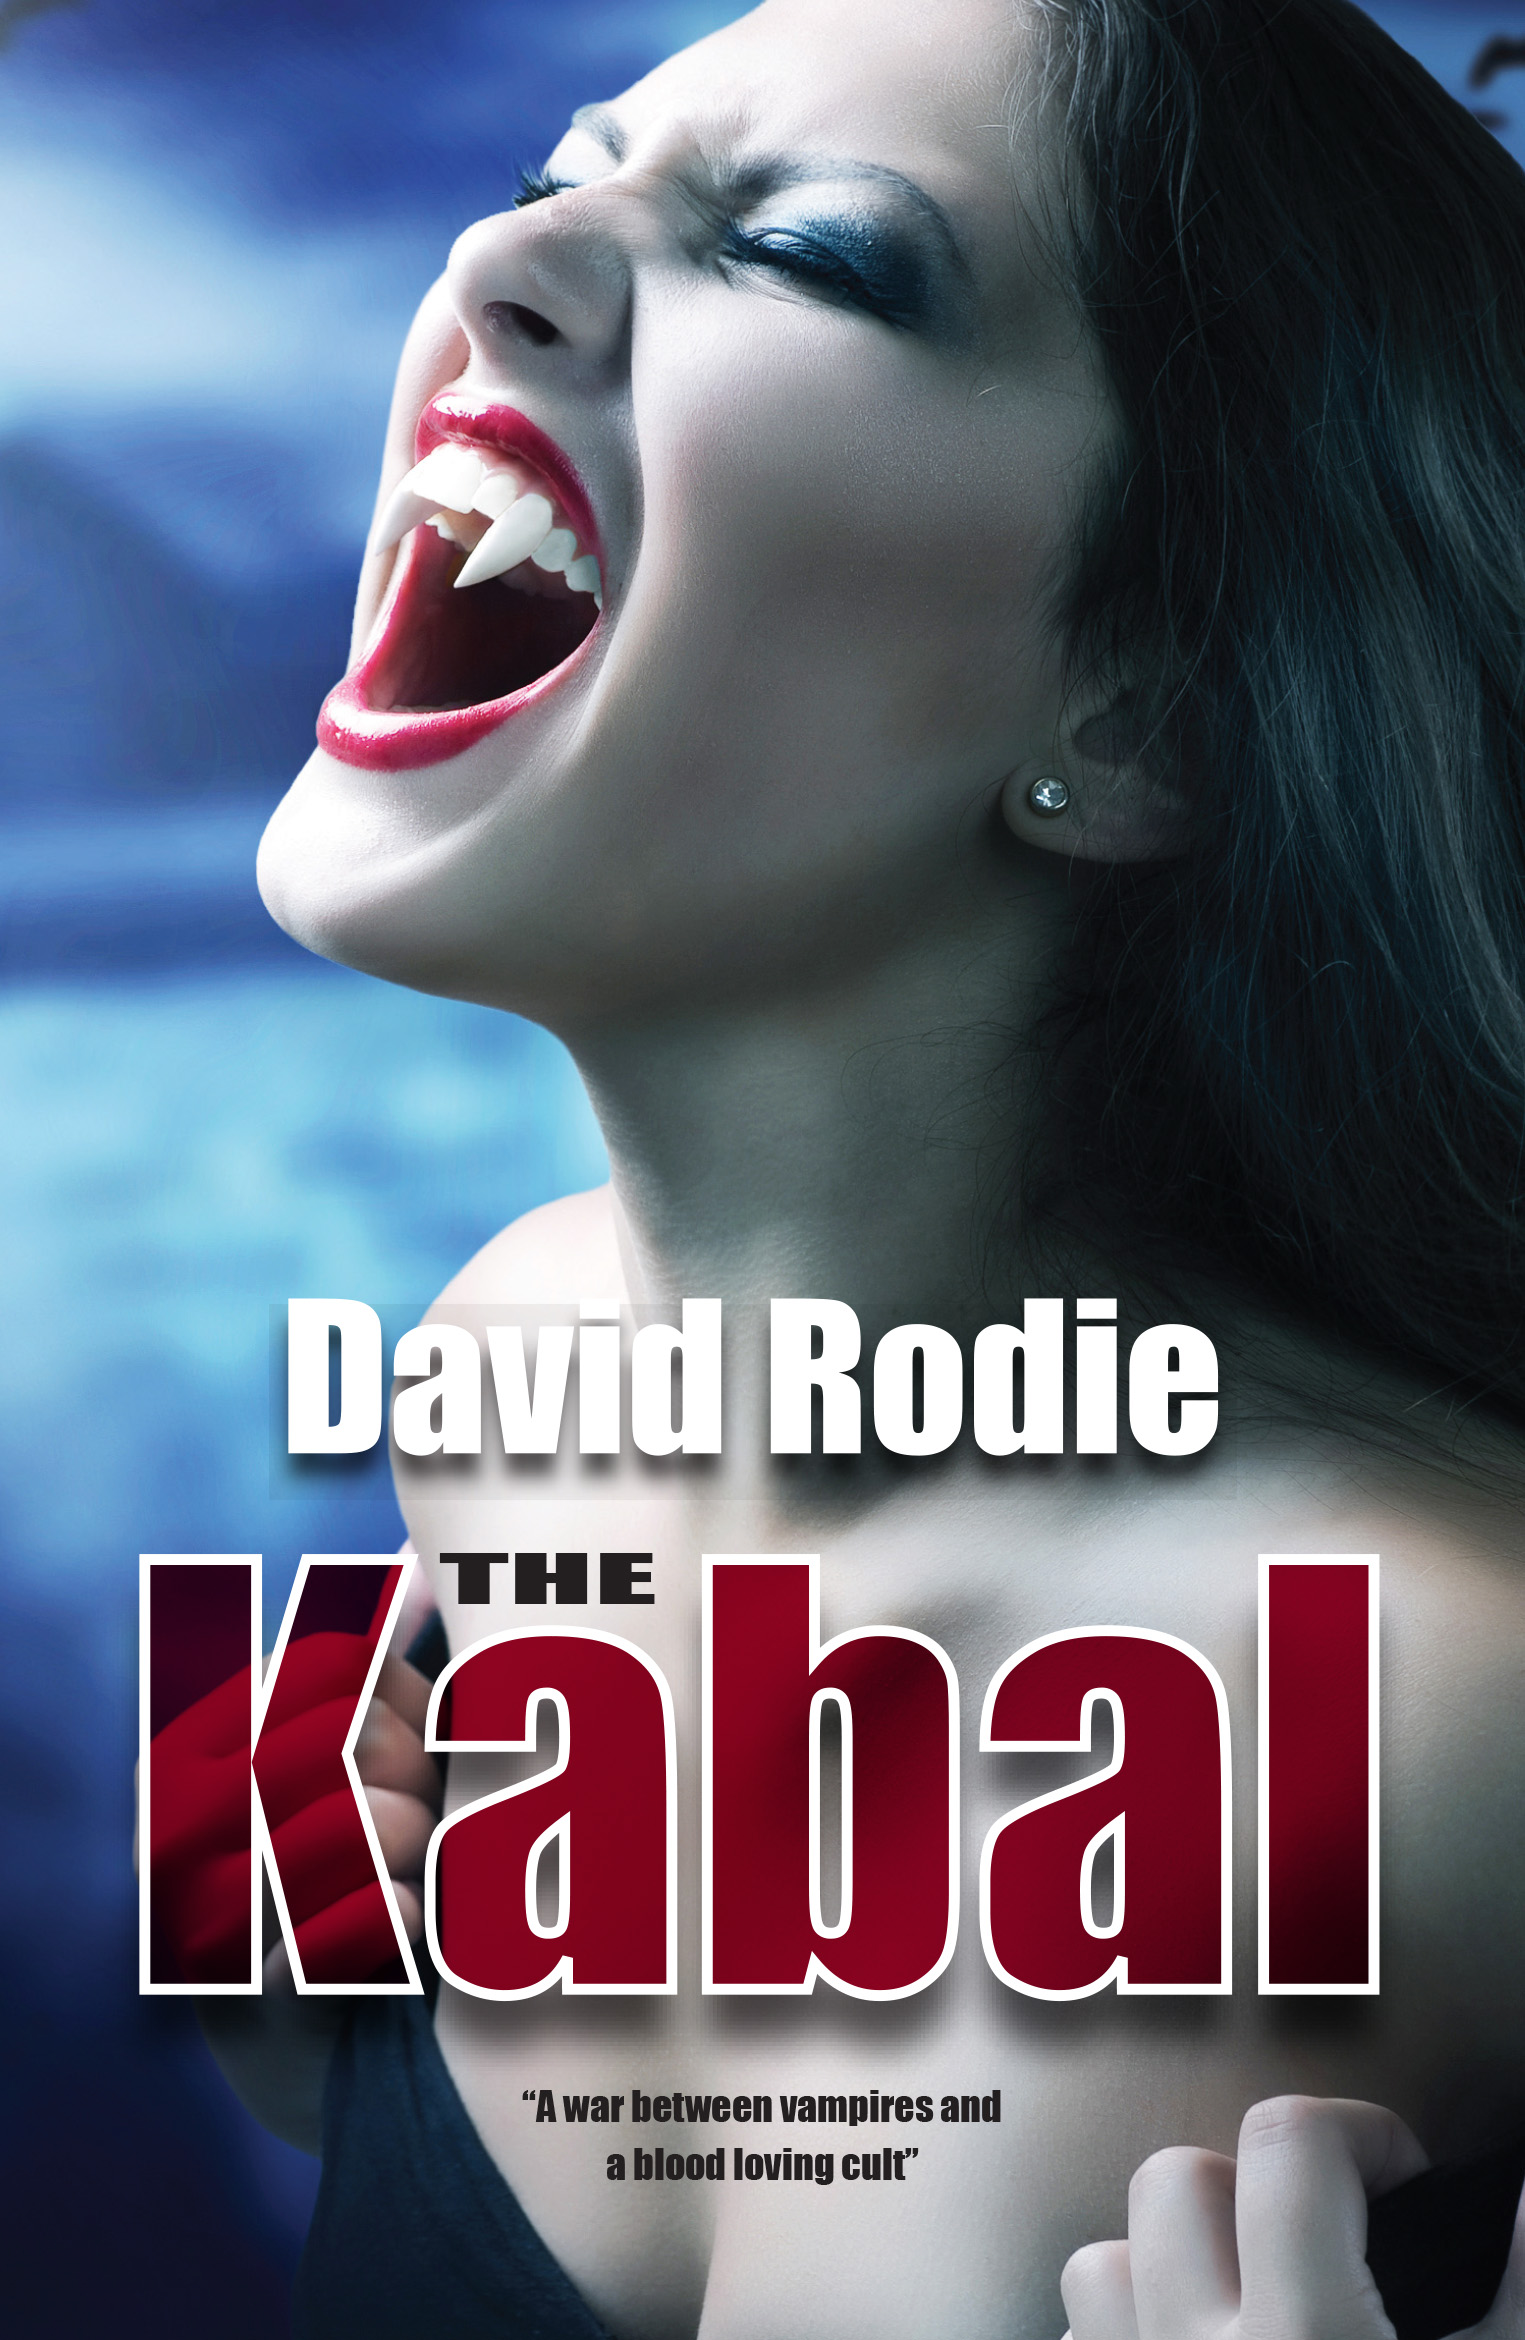 The Kabal, by David Rodie, front cover image.